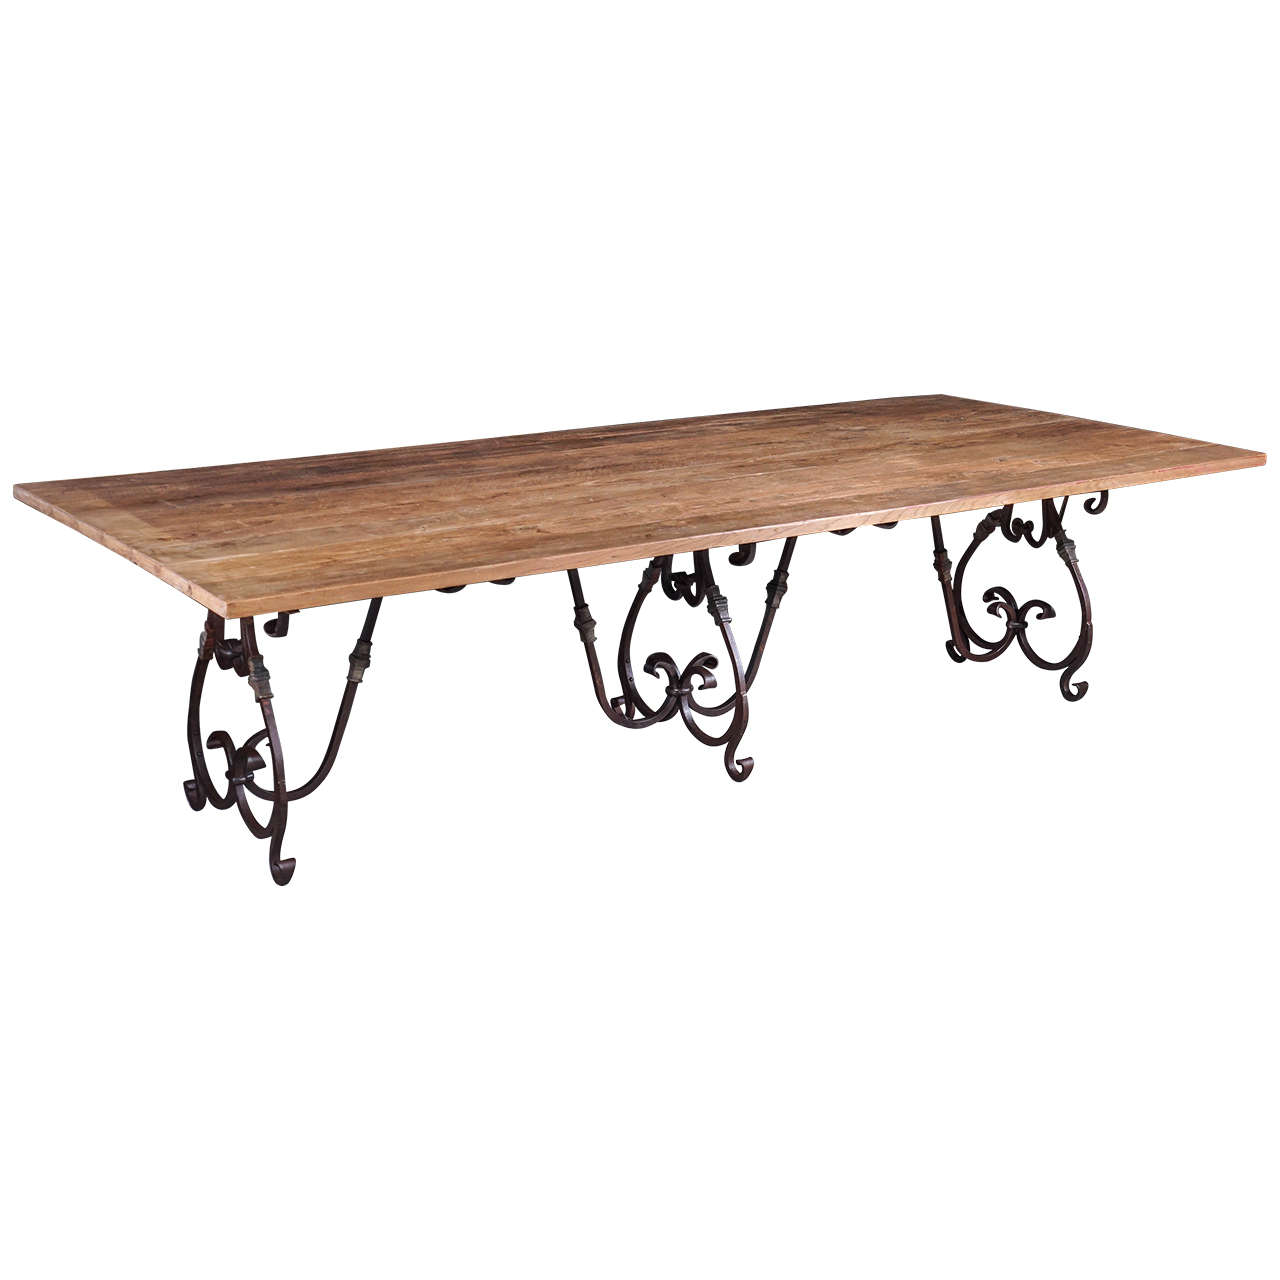 Style Indoor Outdoor Wrought Iron Dining Table For Sale At 1stdibs